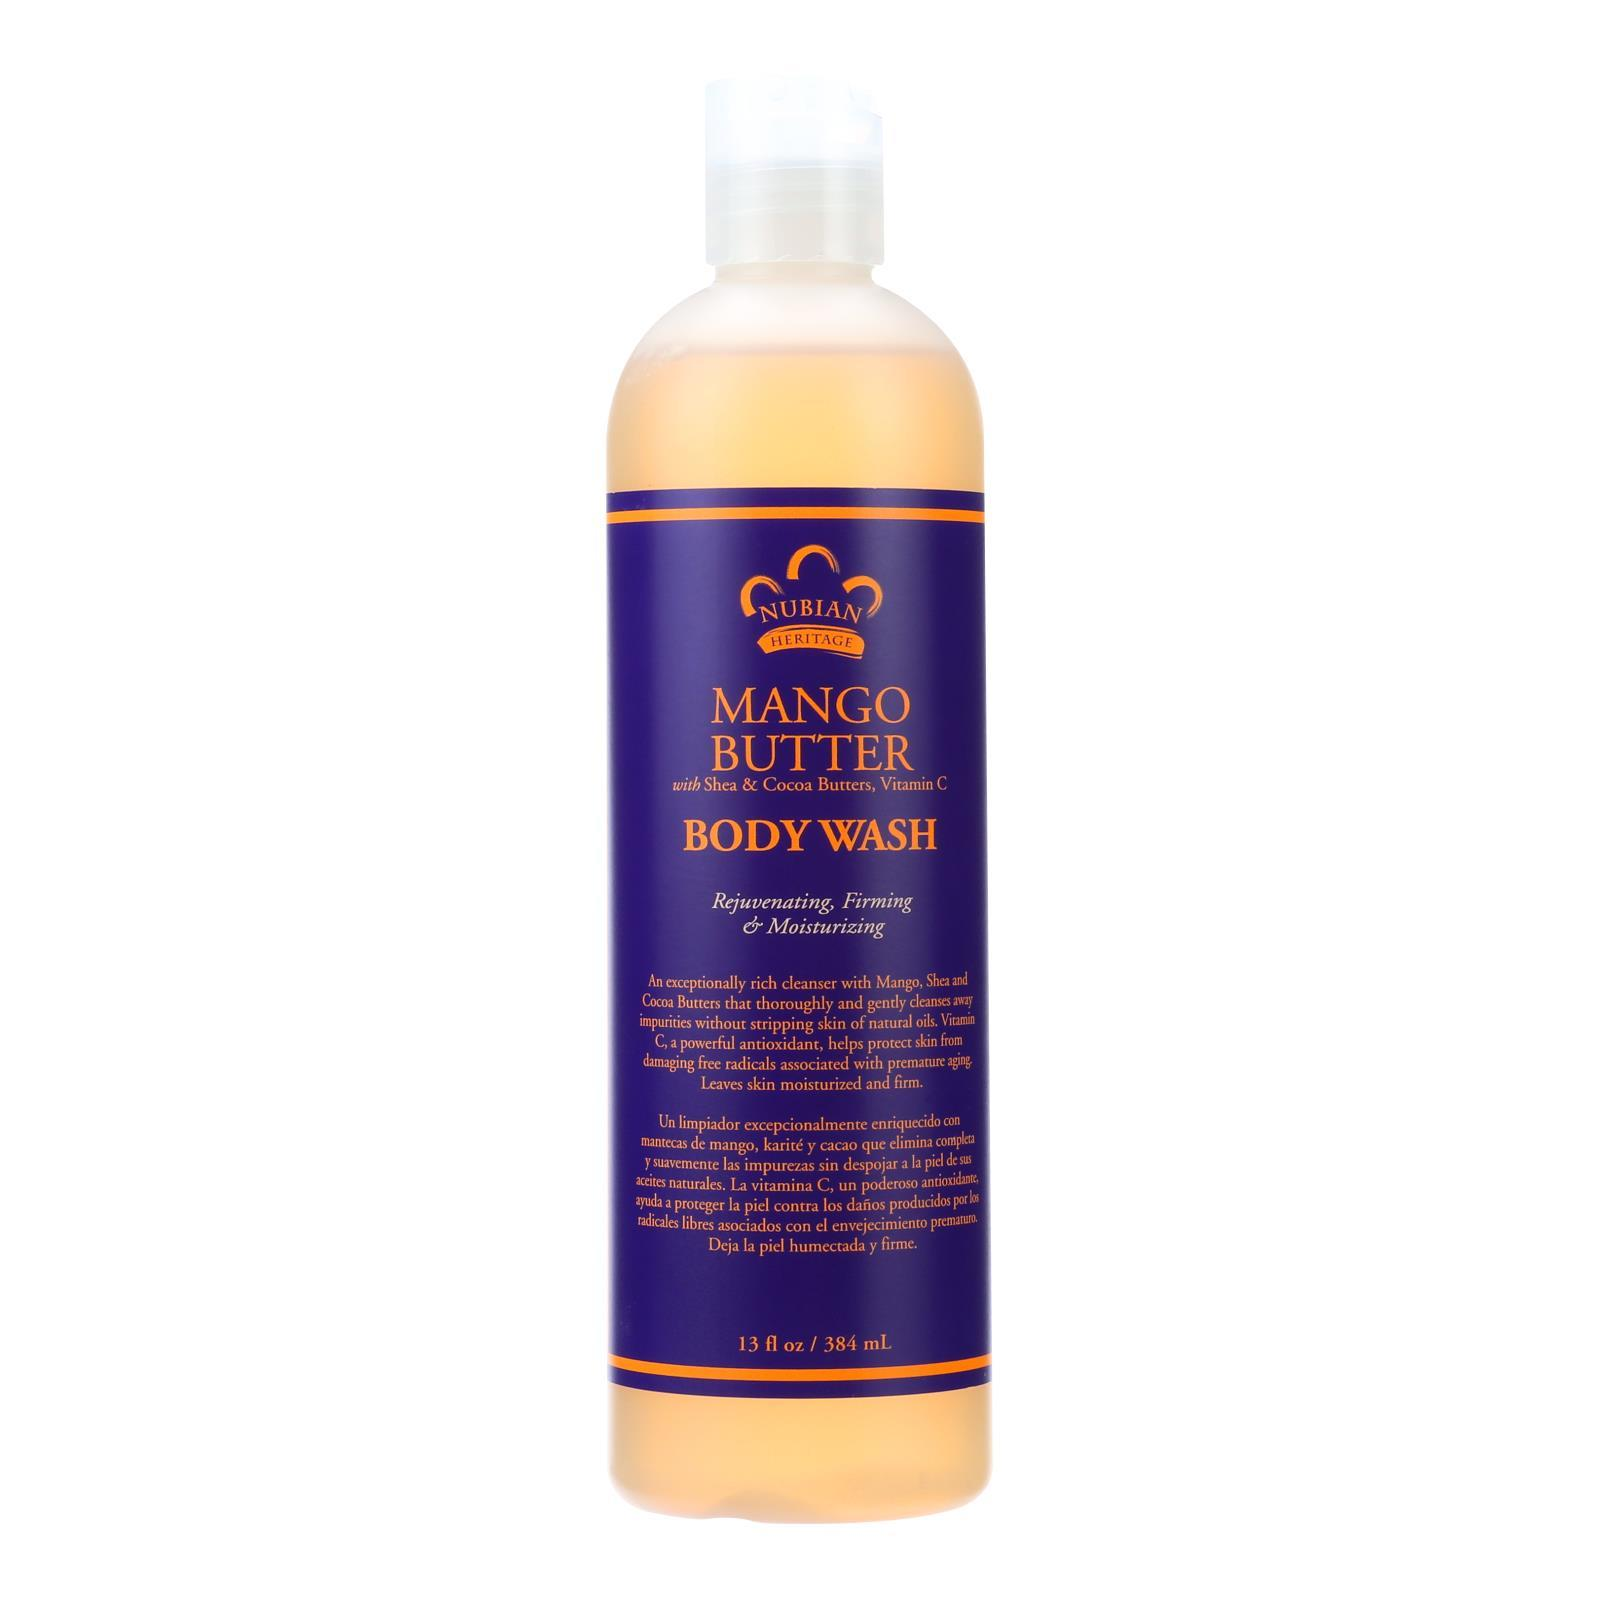 Primary image for Nubian Heritage Body Wash Mango Butter - 13 fl oz